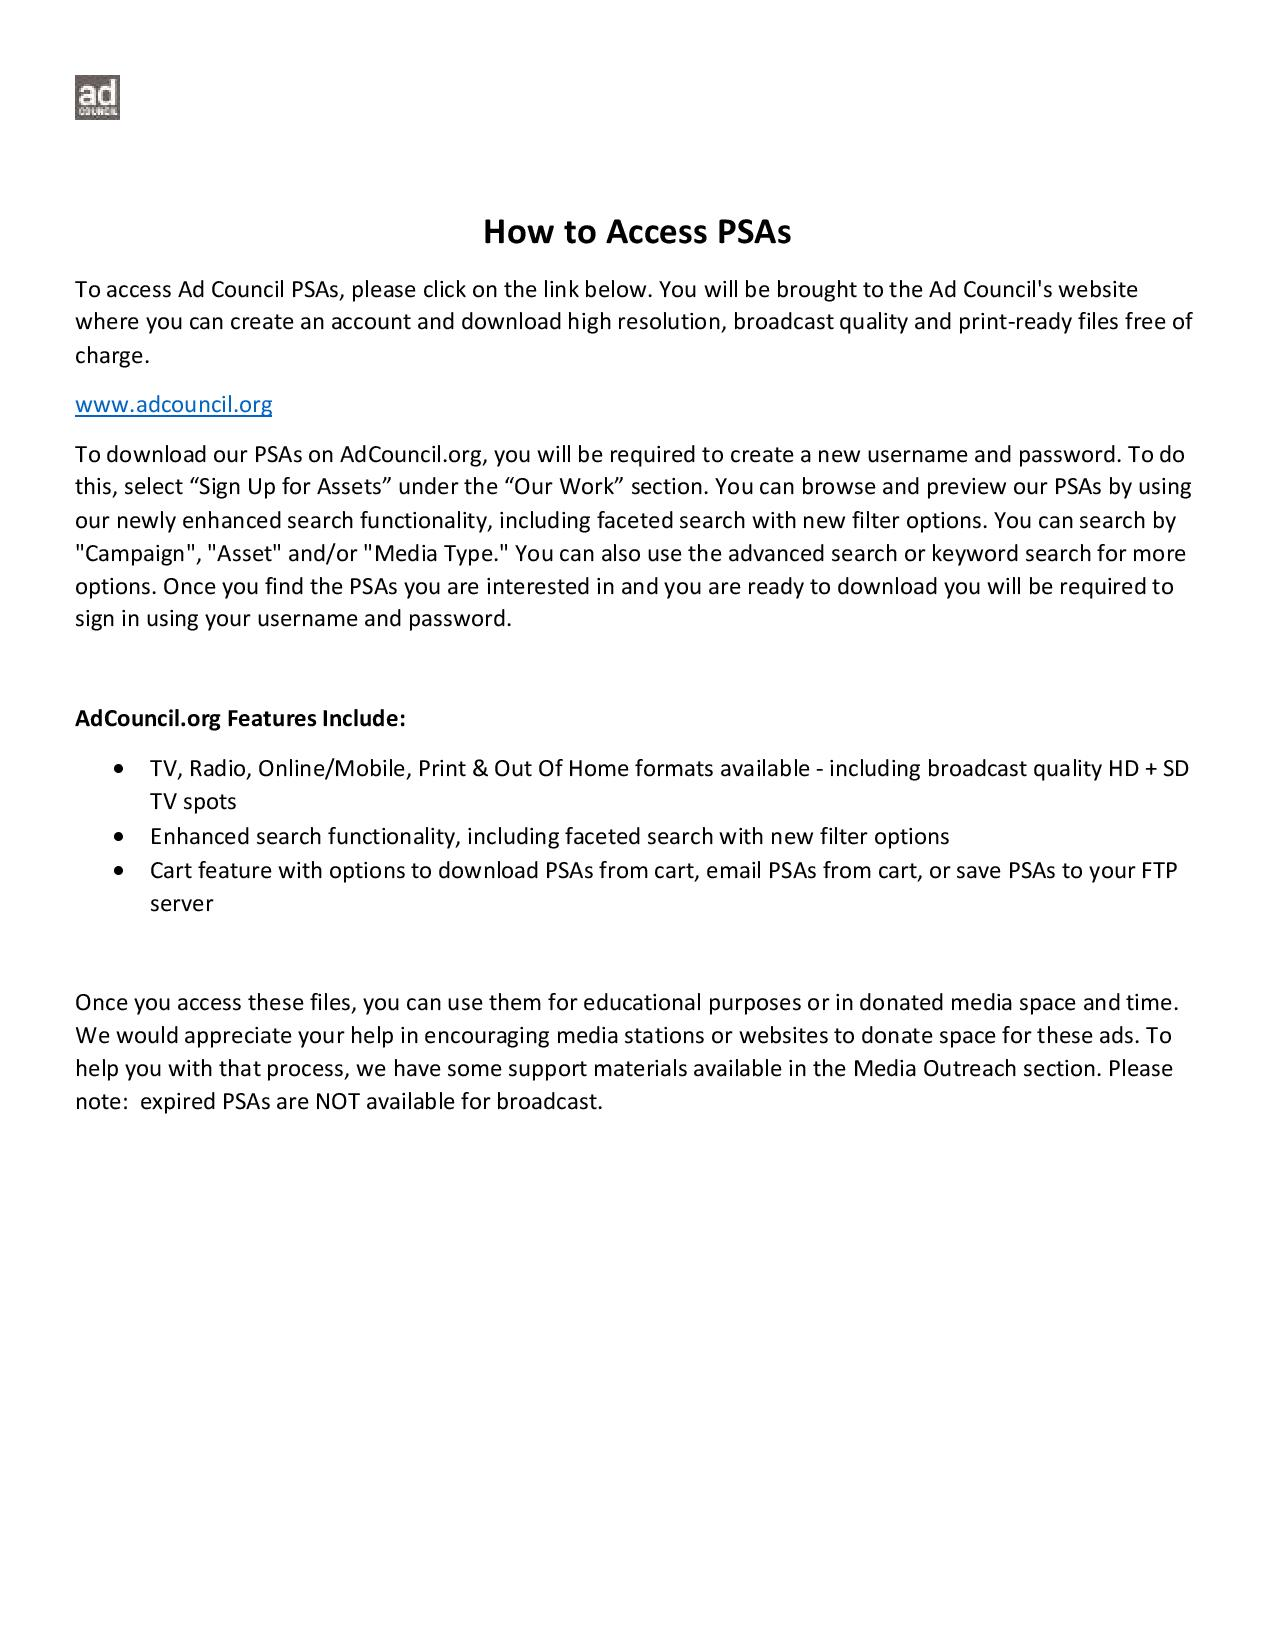 How to Access PSAs_9.10.2020